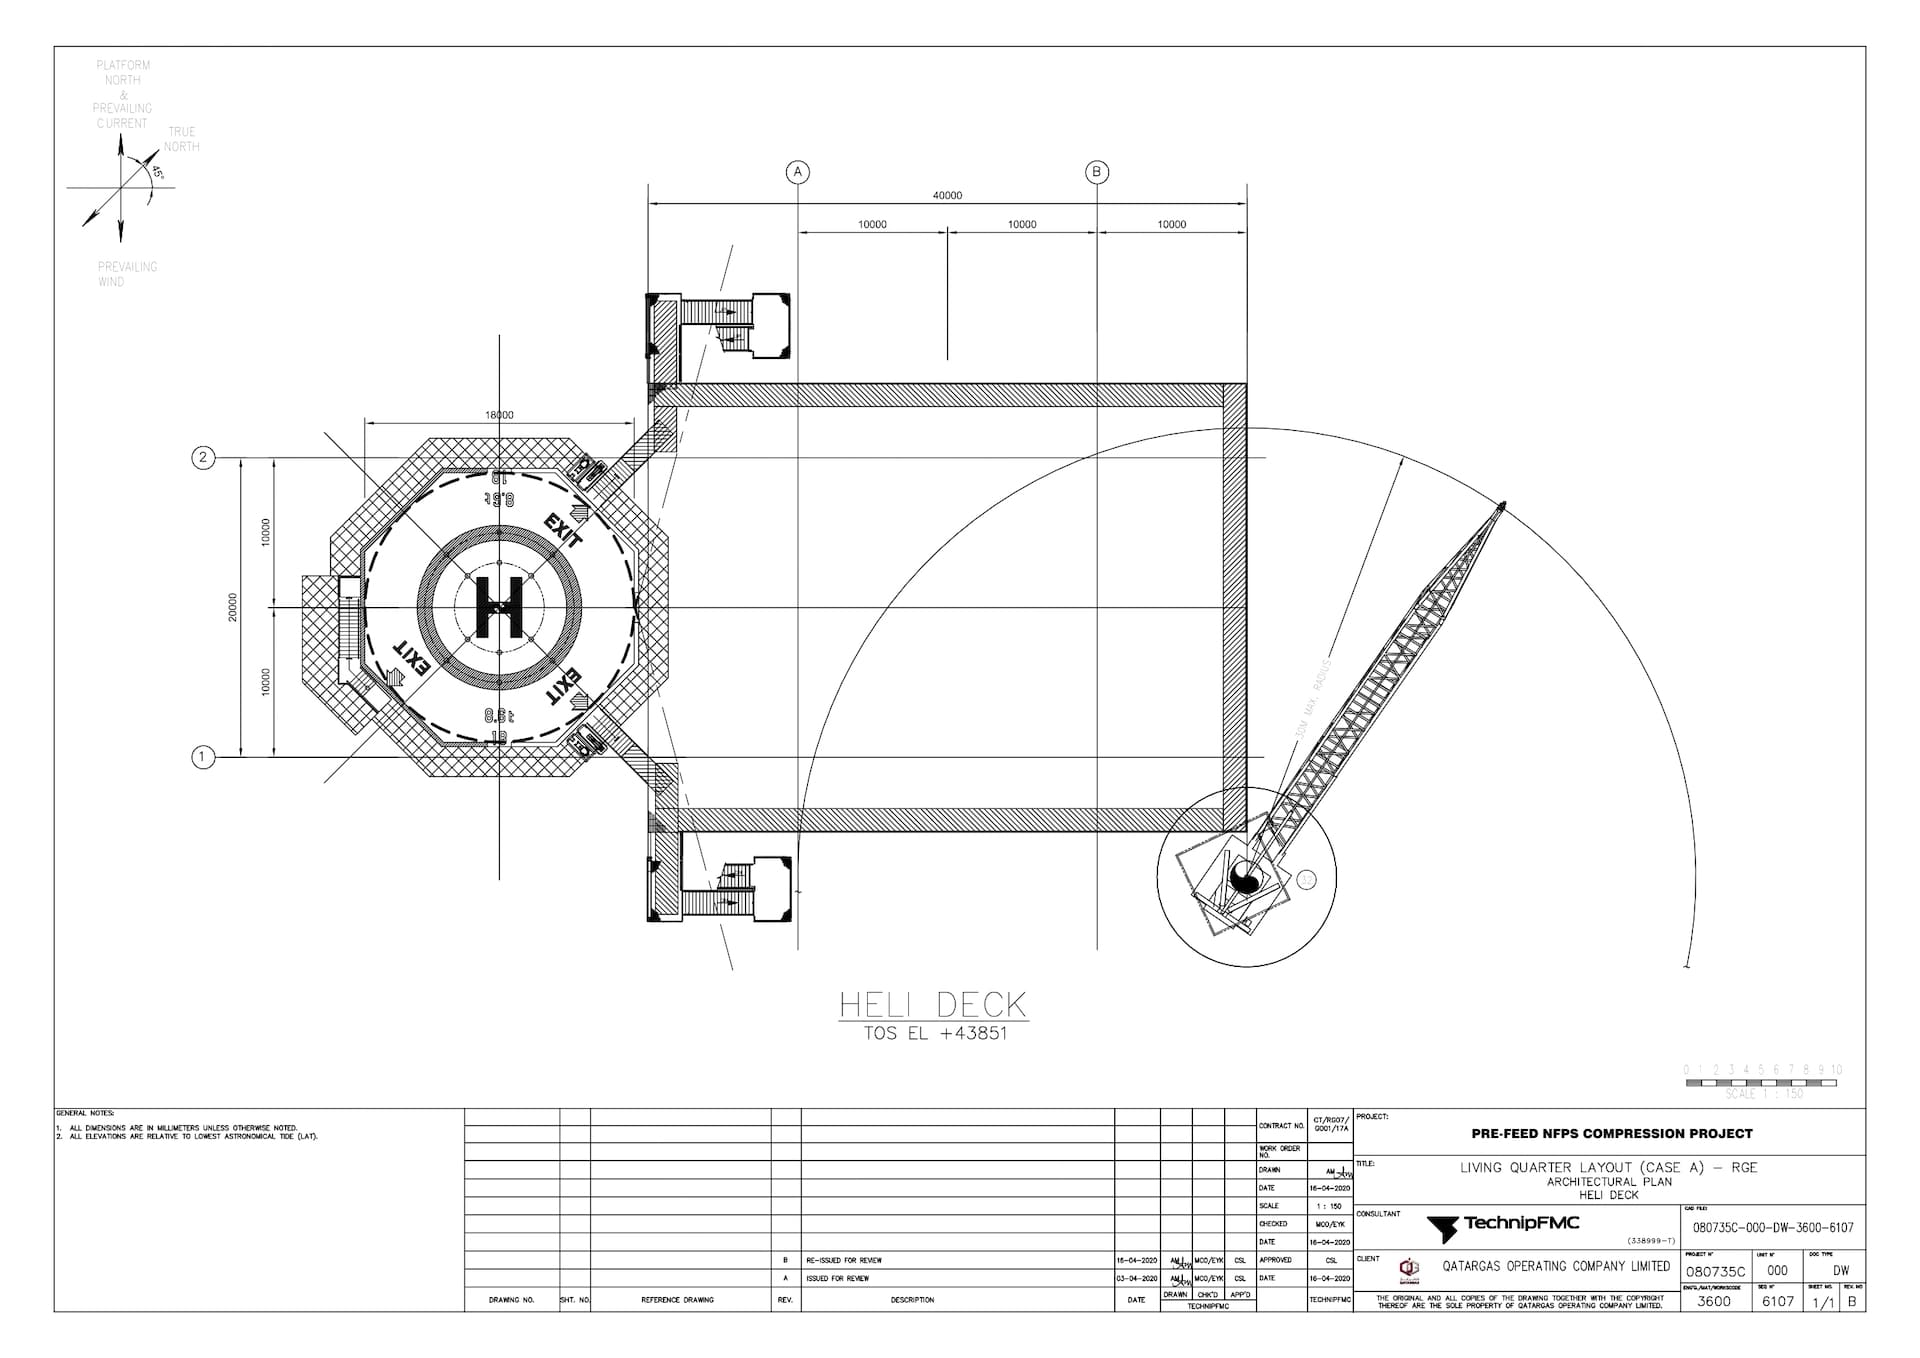 PRE-FEED-NFPS-080735C-000-DW-3600-6107_Rev B LQ Layout (Case A) - RGE - Architectural Plan - Heli Deck_page-0001